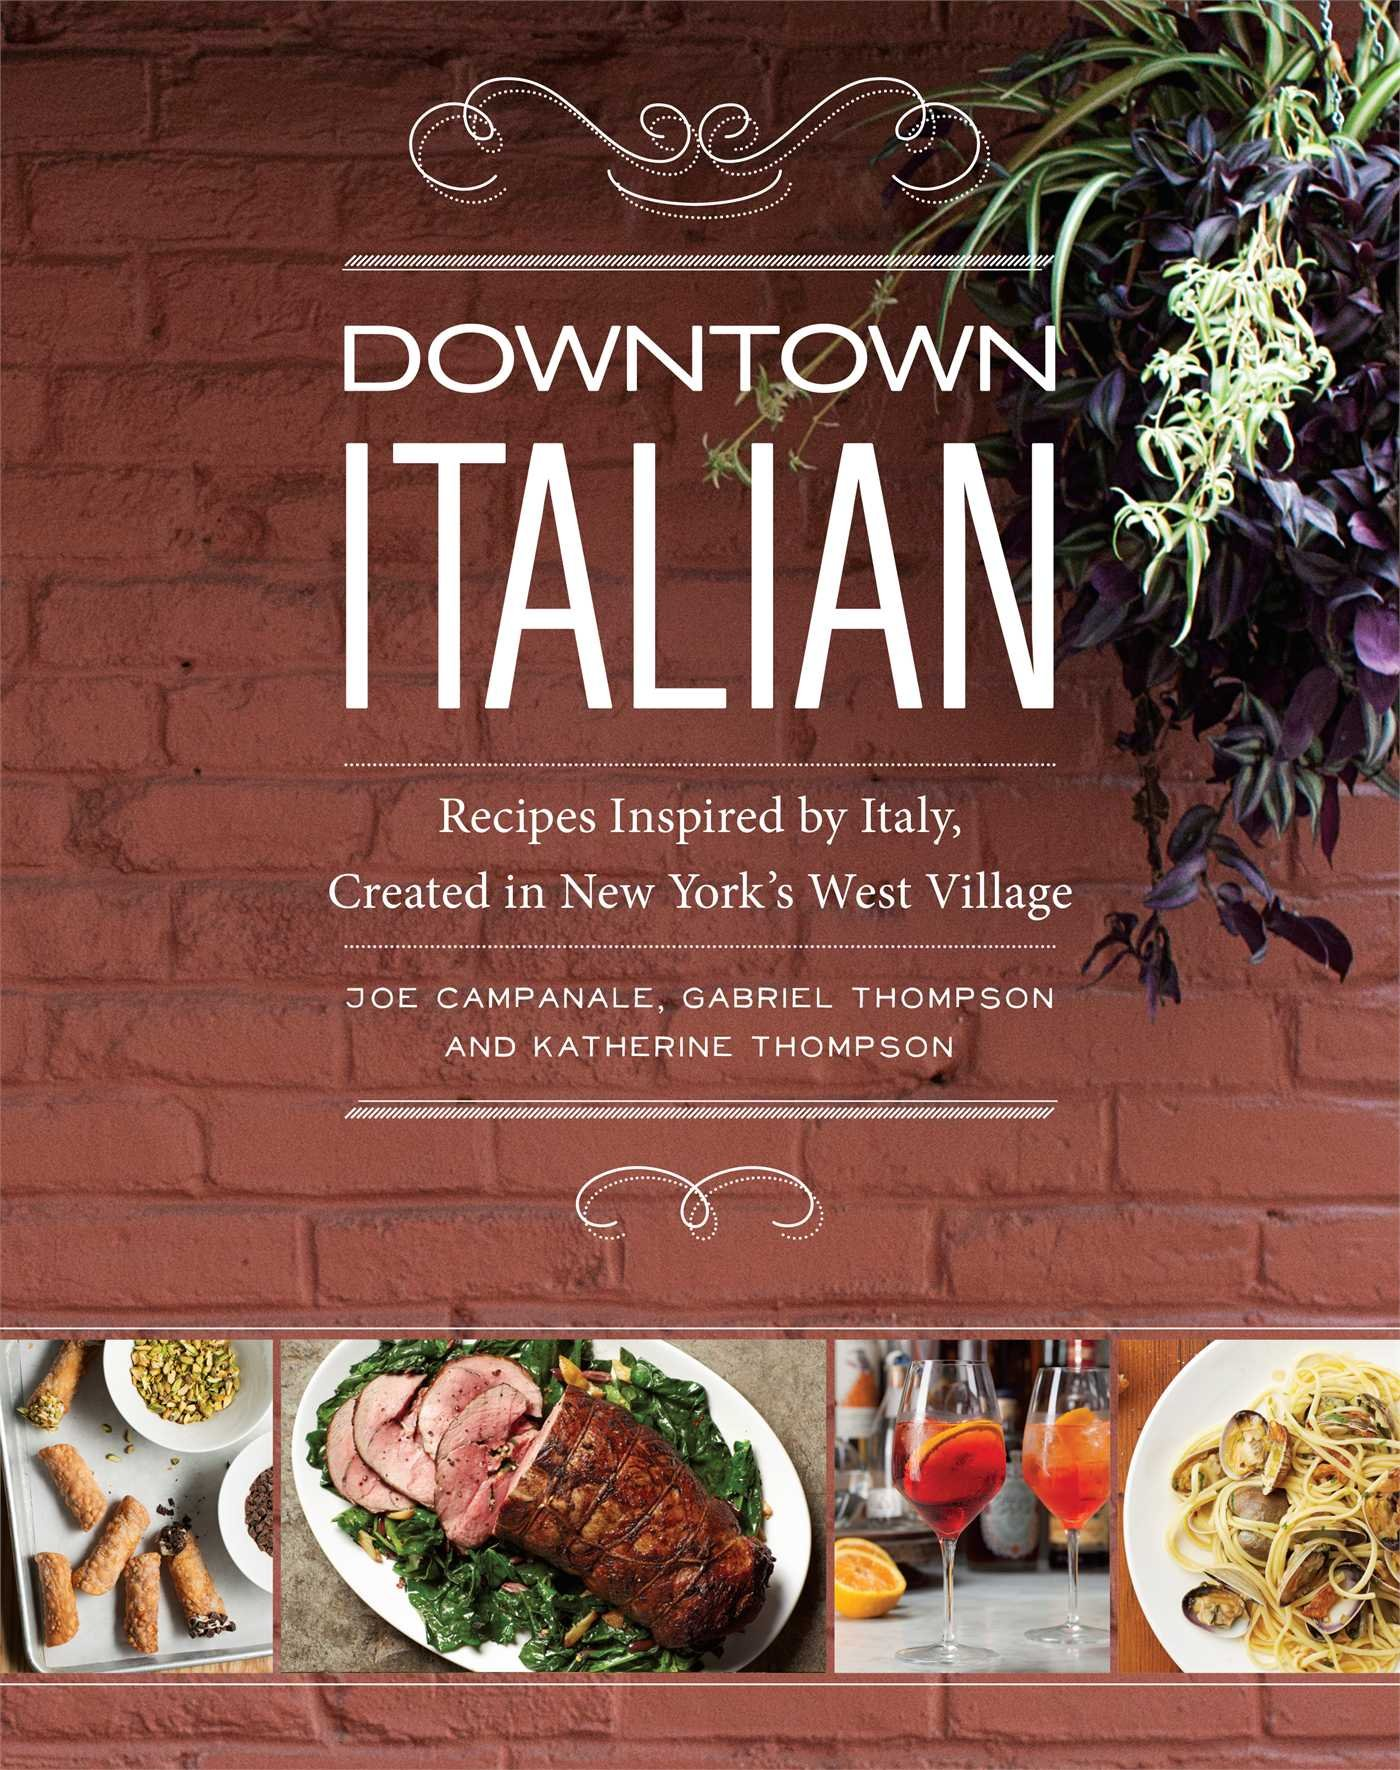 Downtown Italian: Recipes Inspired by Italy, Created in New York's West Village by Andrews McMeel Publishing